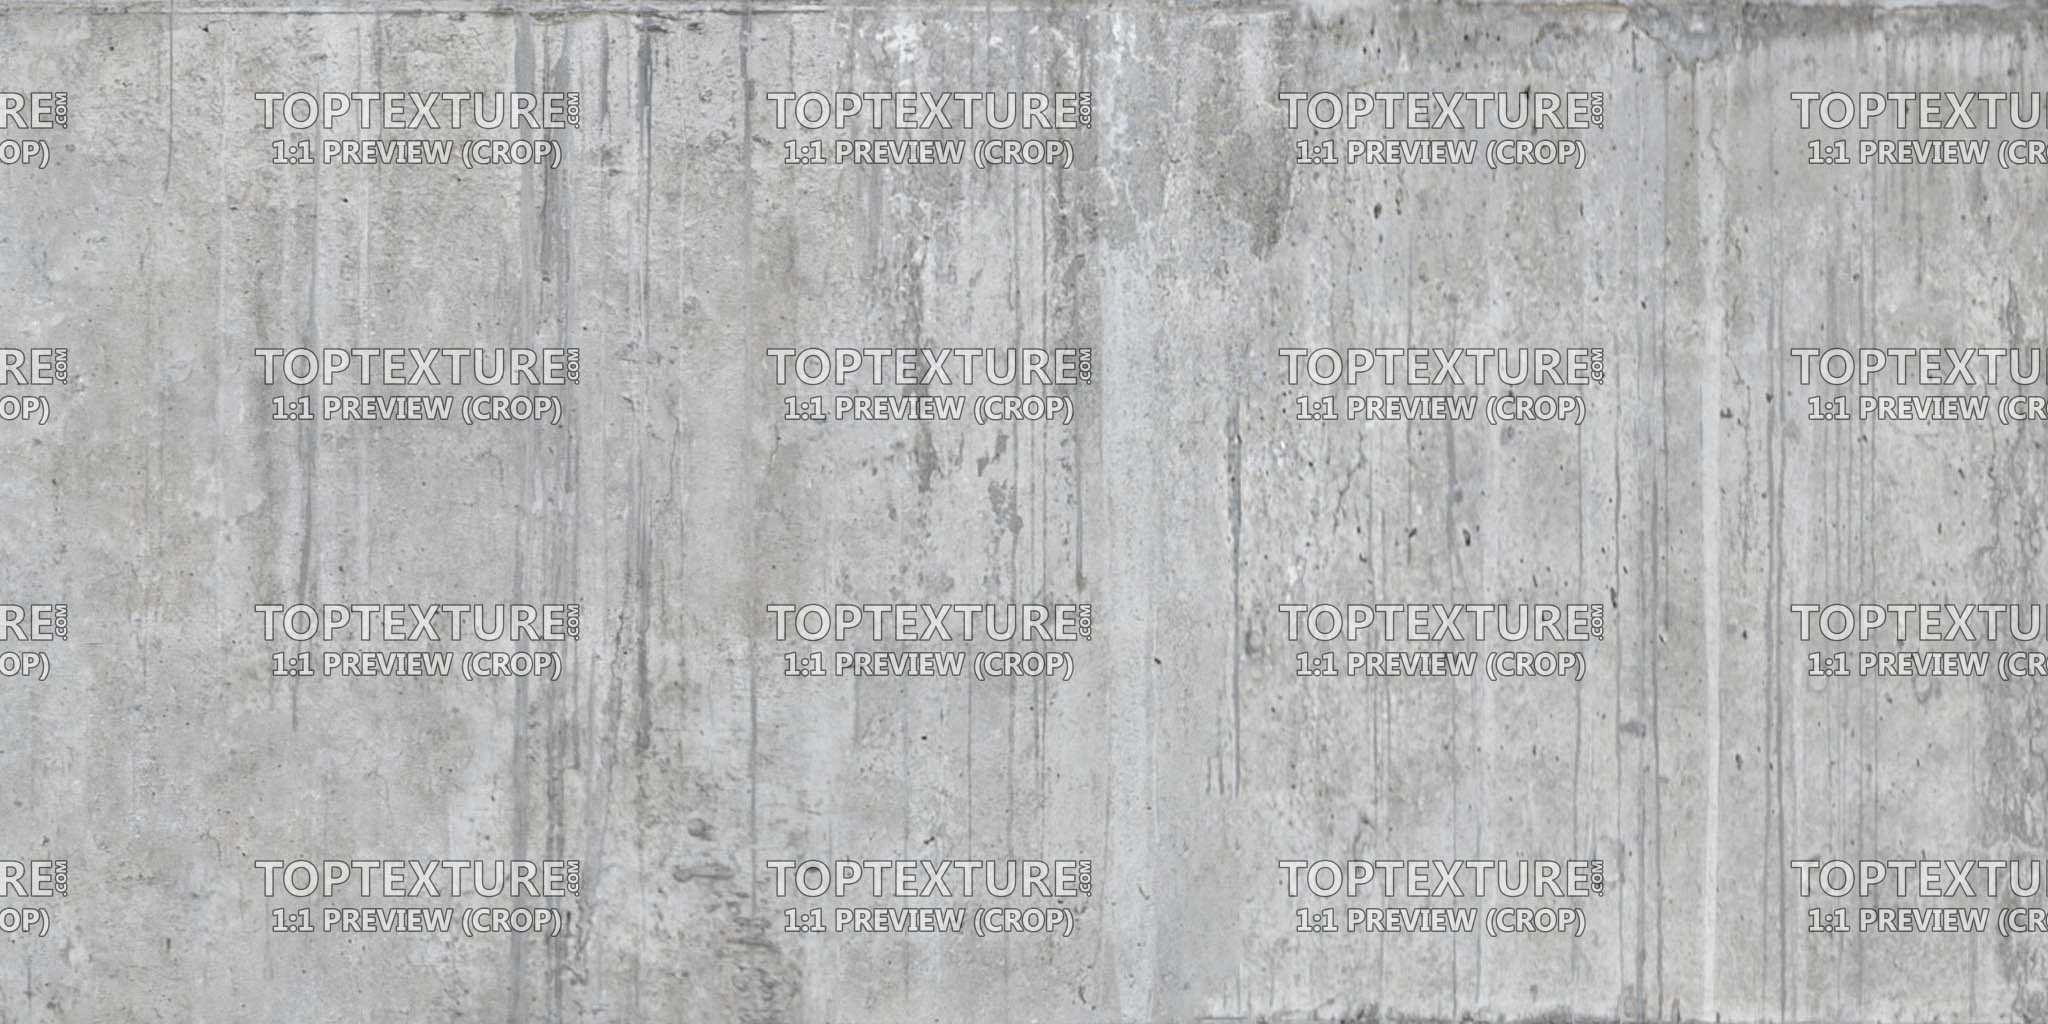 Long Concrete Wall Leaking Grunge - Top Texture